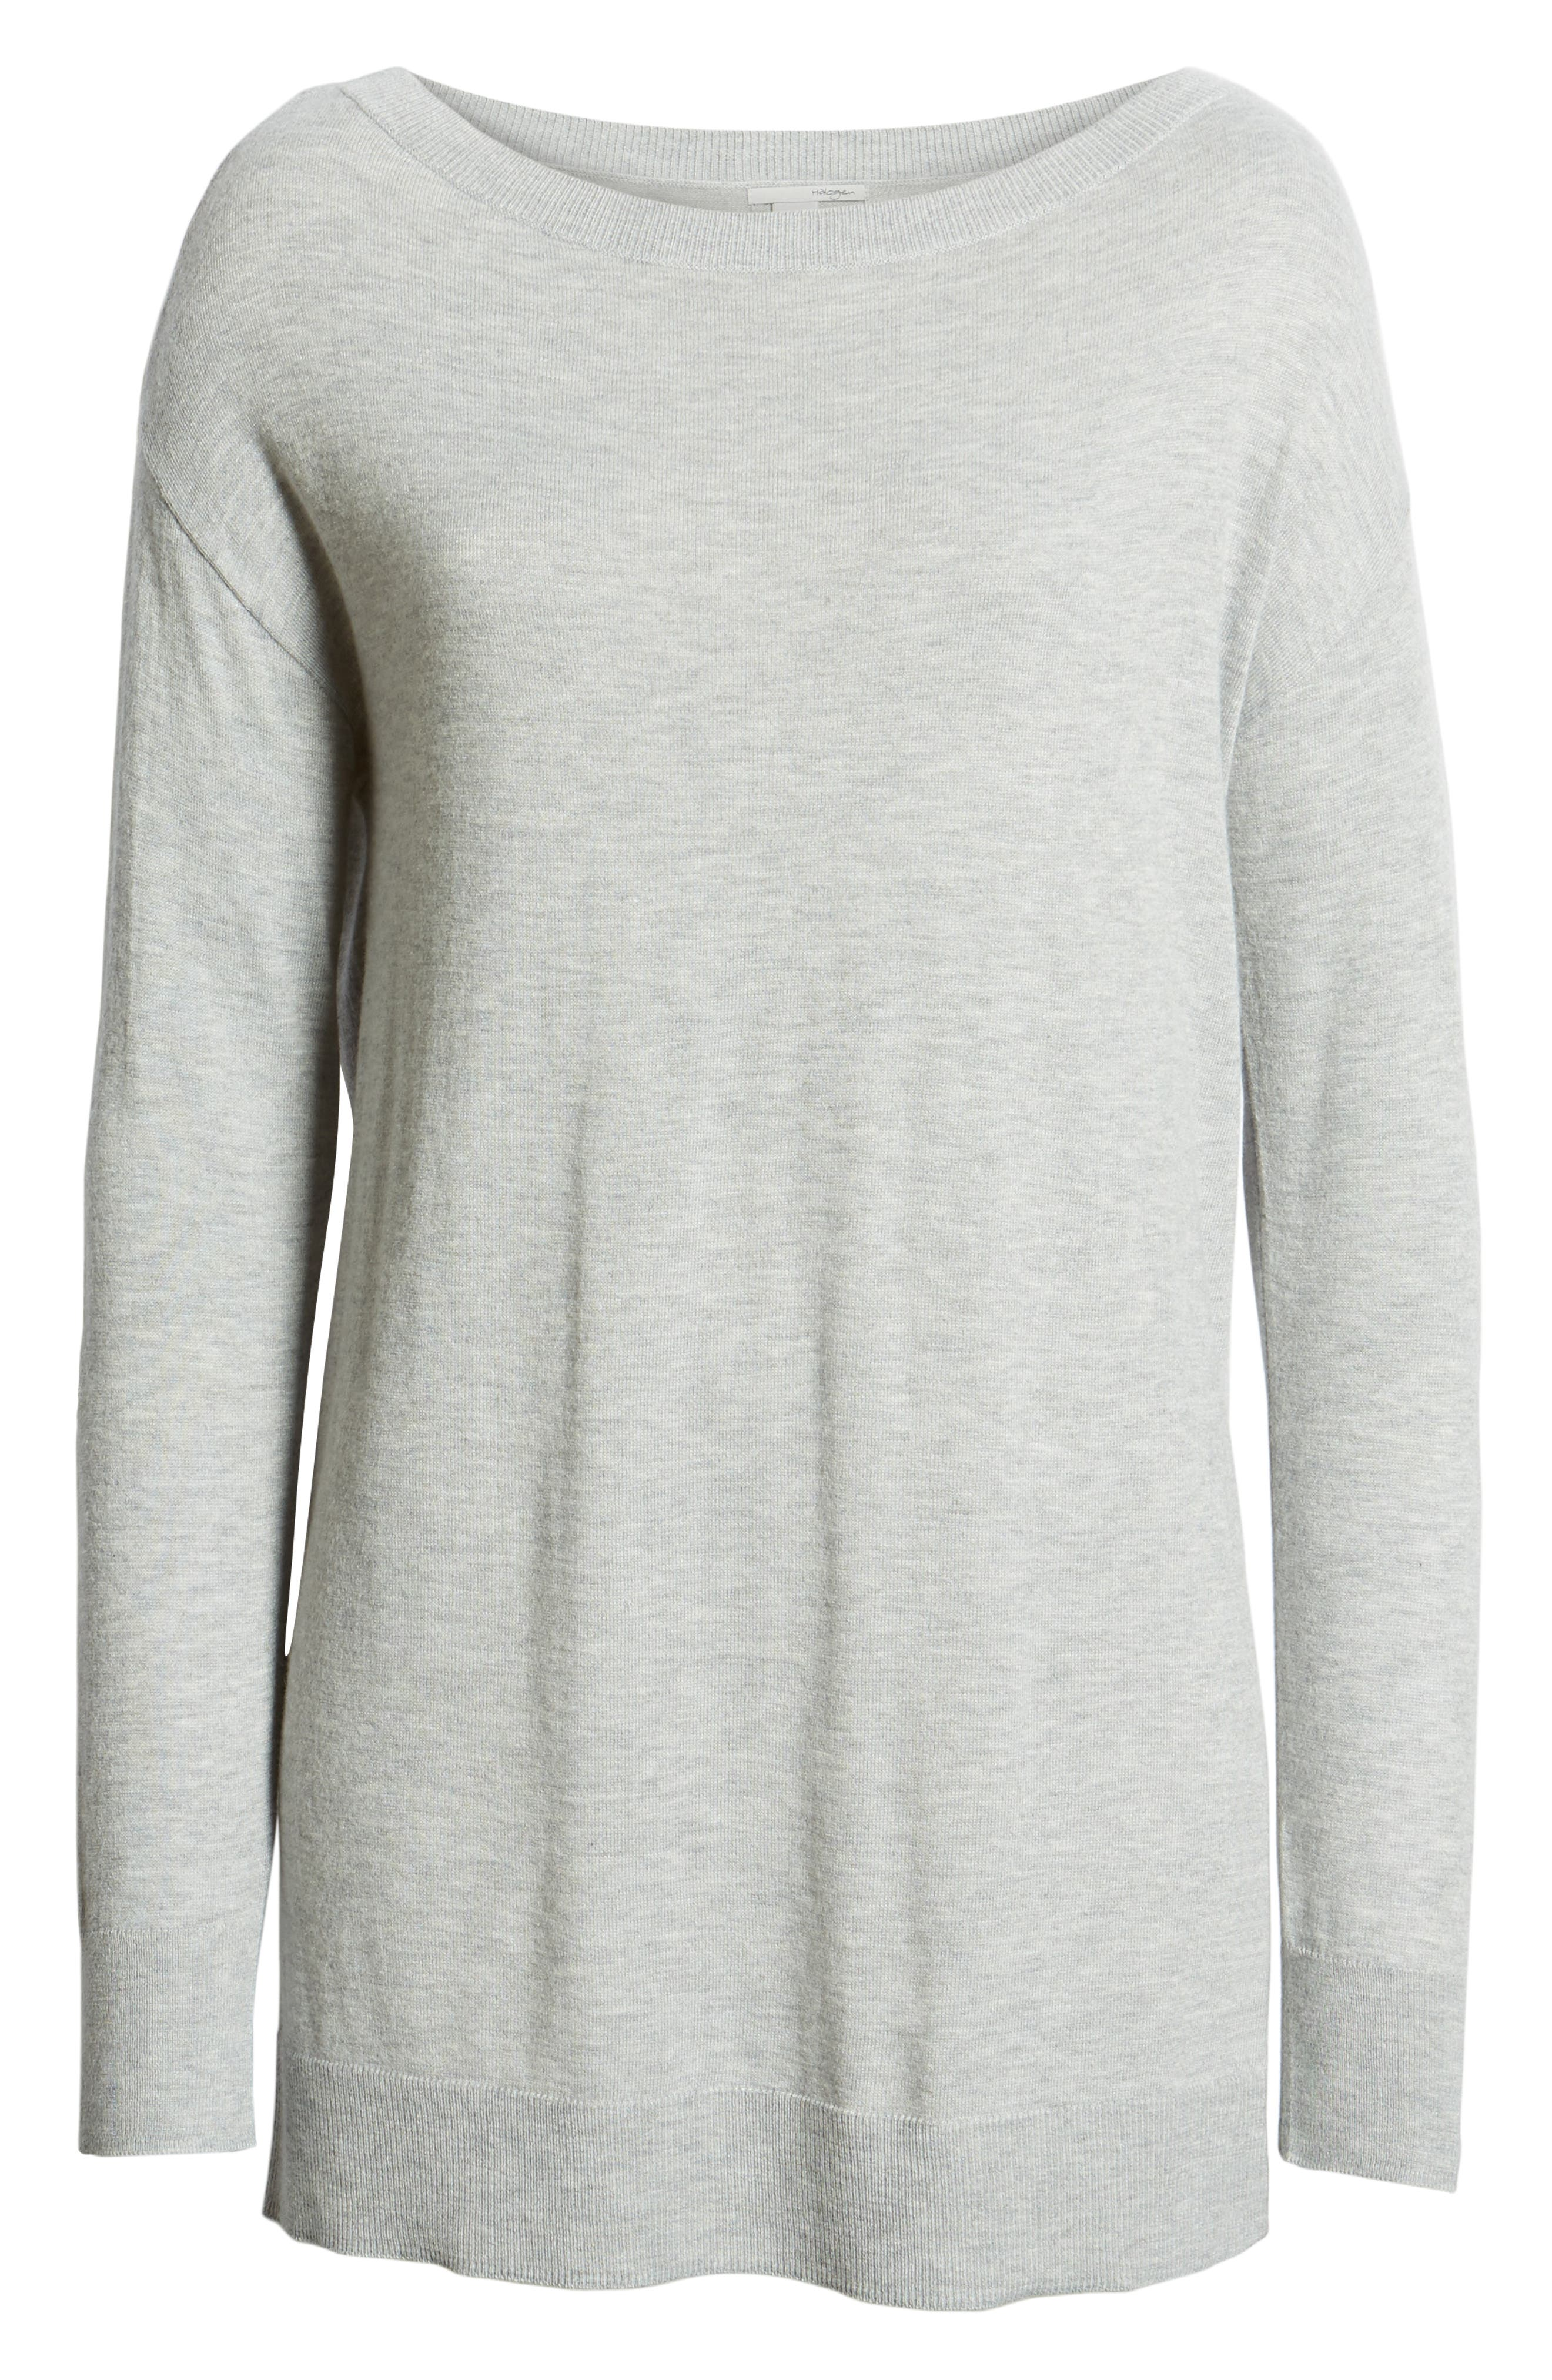 HALOGEN<SUP>®</SUP>, Boatneck Tunic Sweater, Alternate thumbnail 6, color, 020